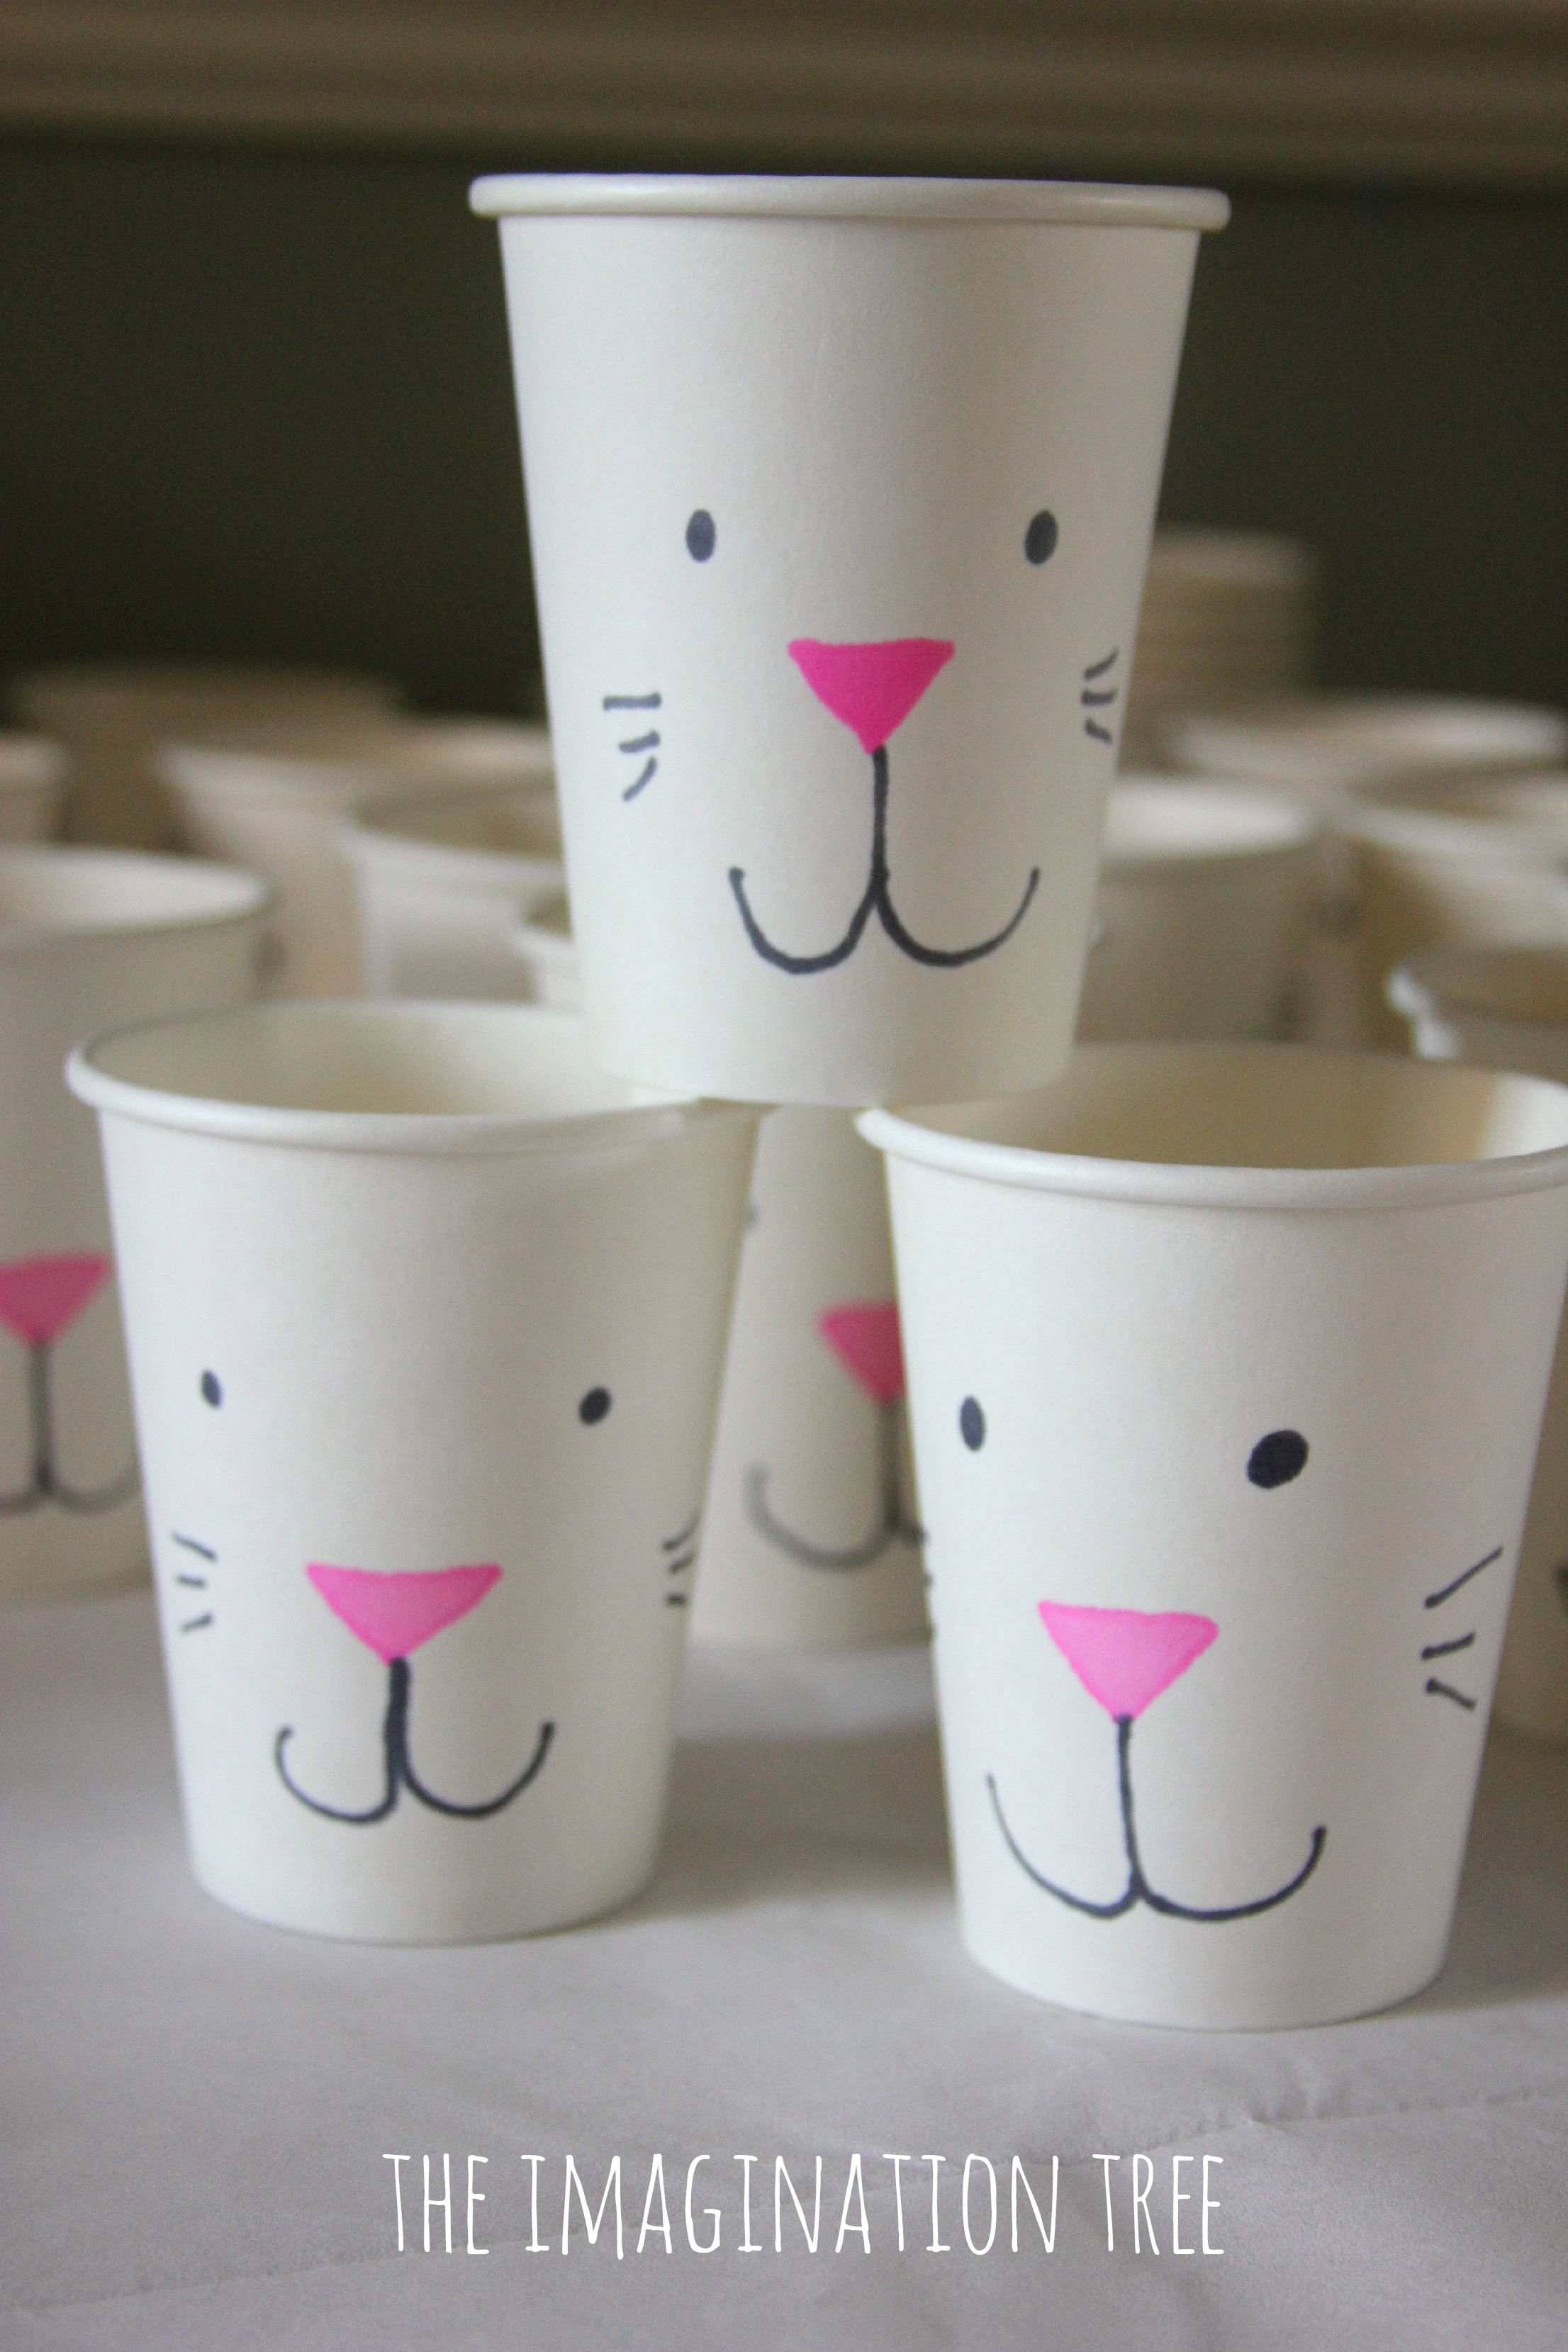 Easter bunny treat cups holidays easter by rebecca greco make some super simple easter bunny cups for going on easter egg hunts or giving treats in a quick decoration and diy gift idea for the kids this spring negle Images